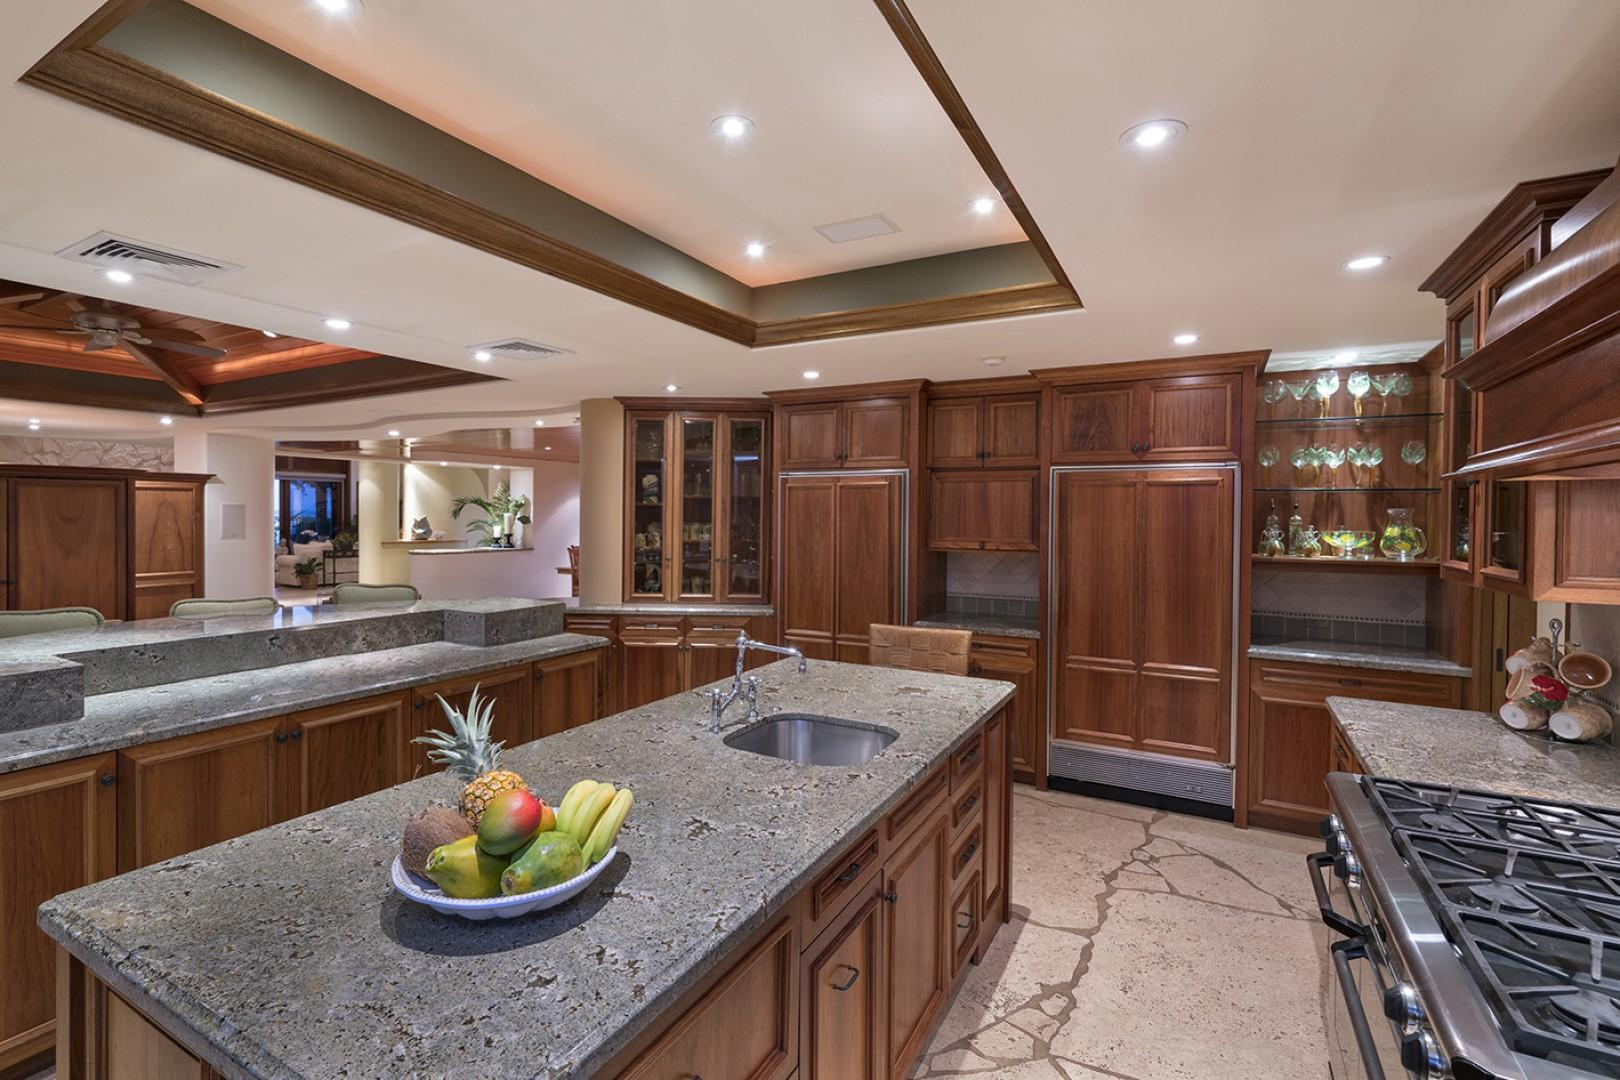 Main house: Kitchen comes with top of the line appliances, including a gas stove.